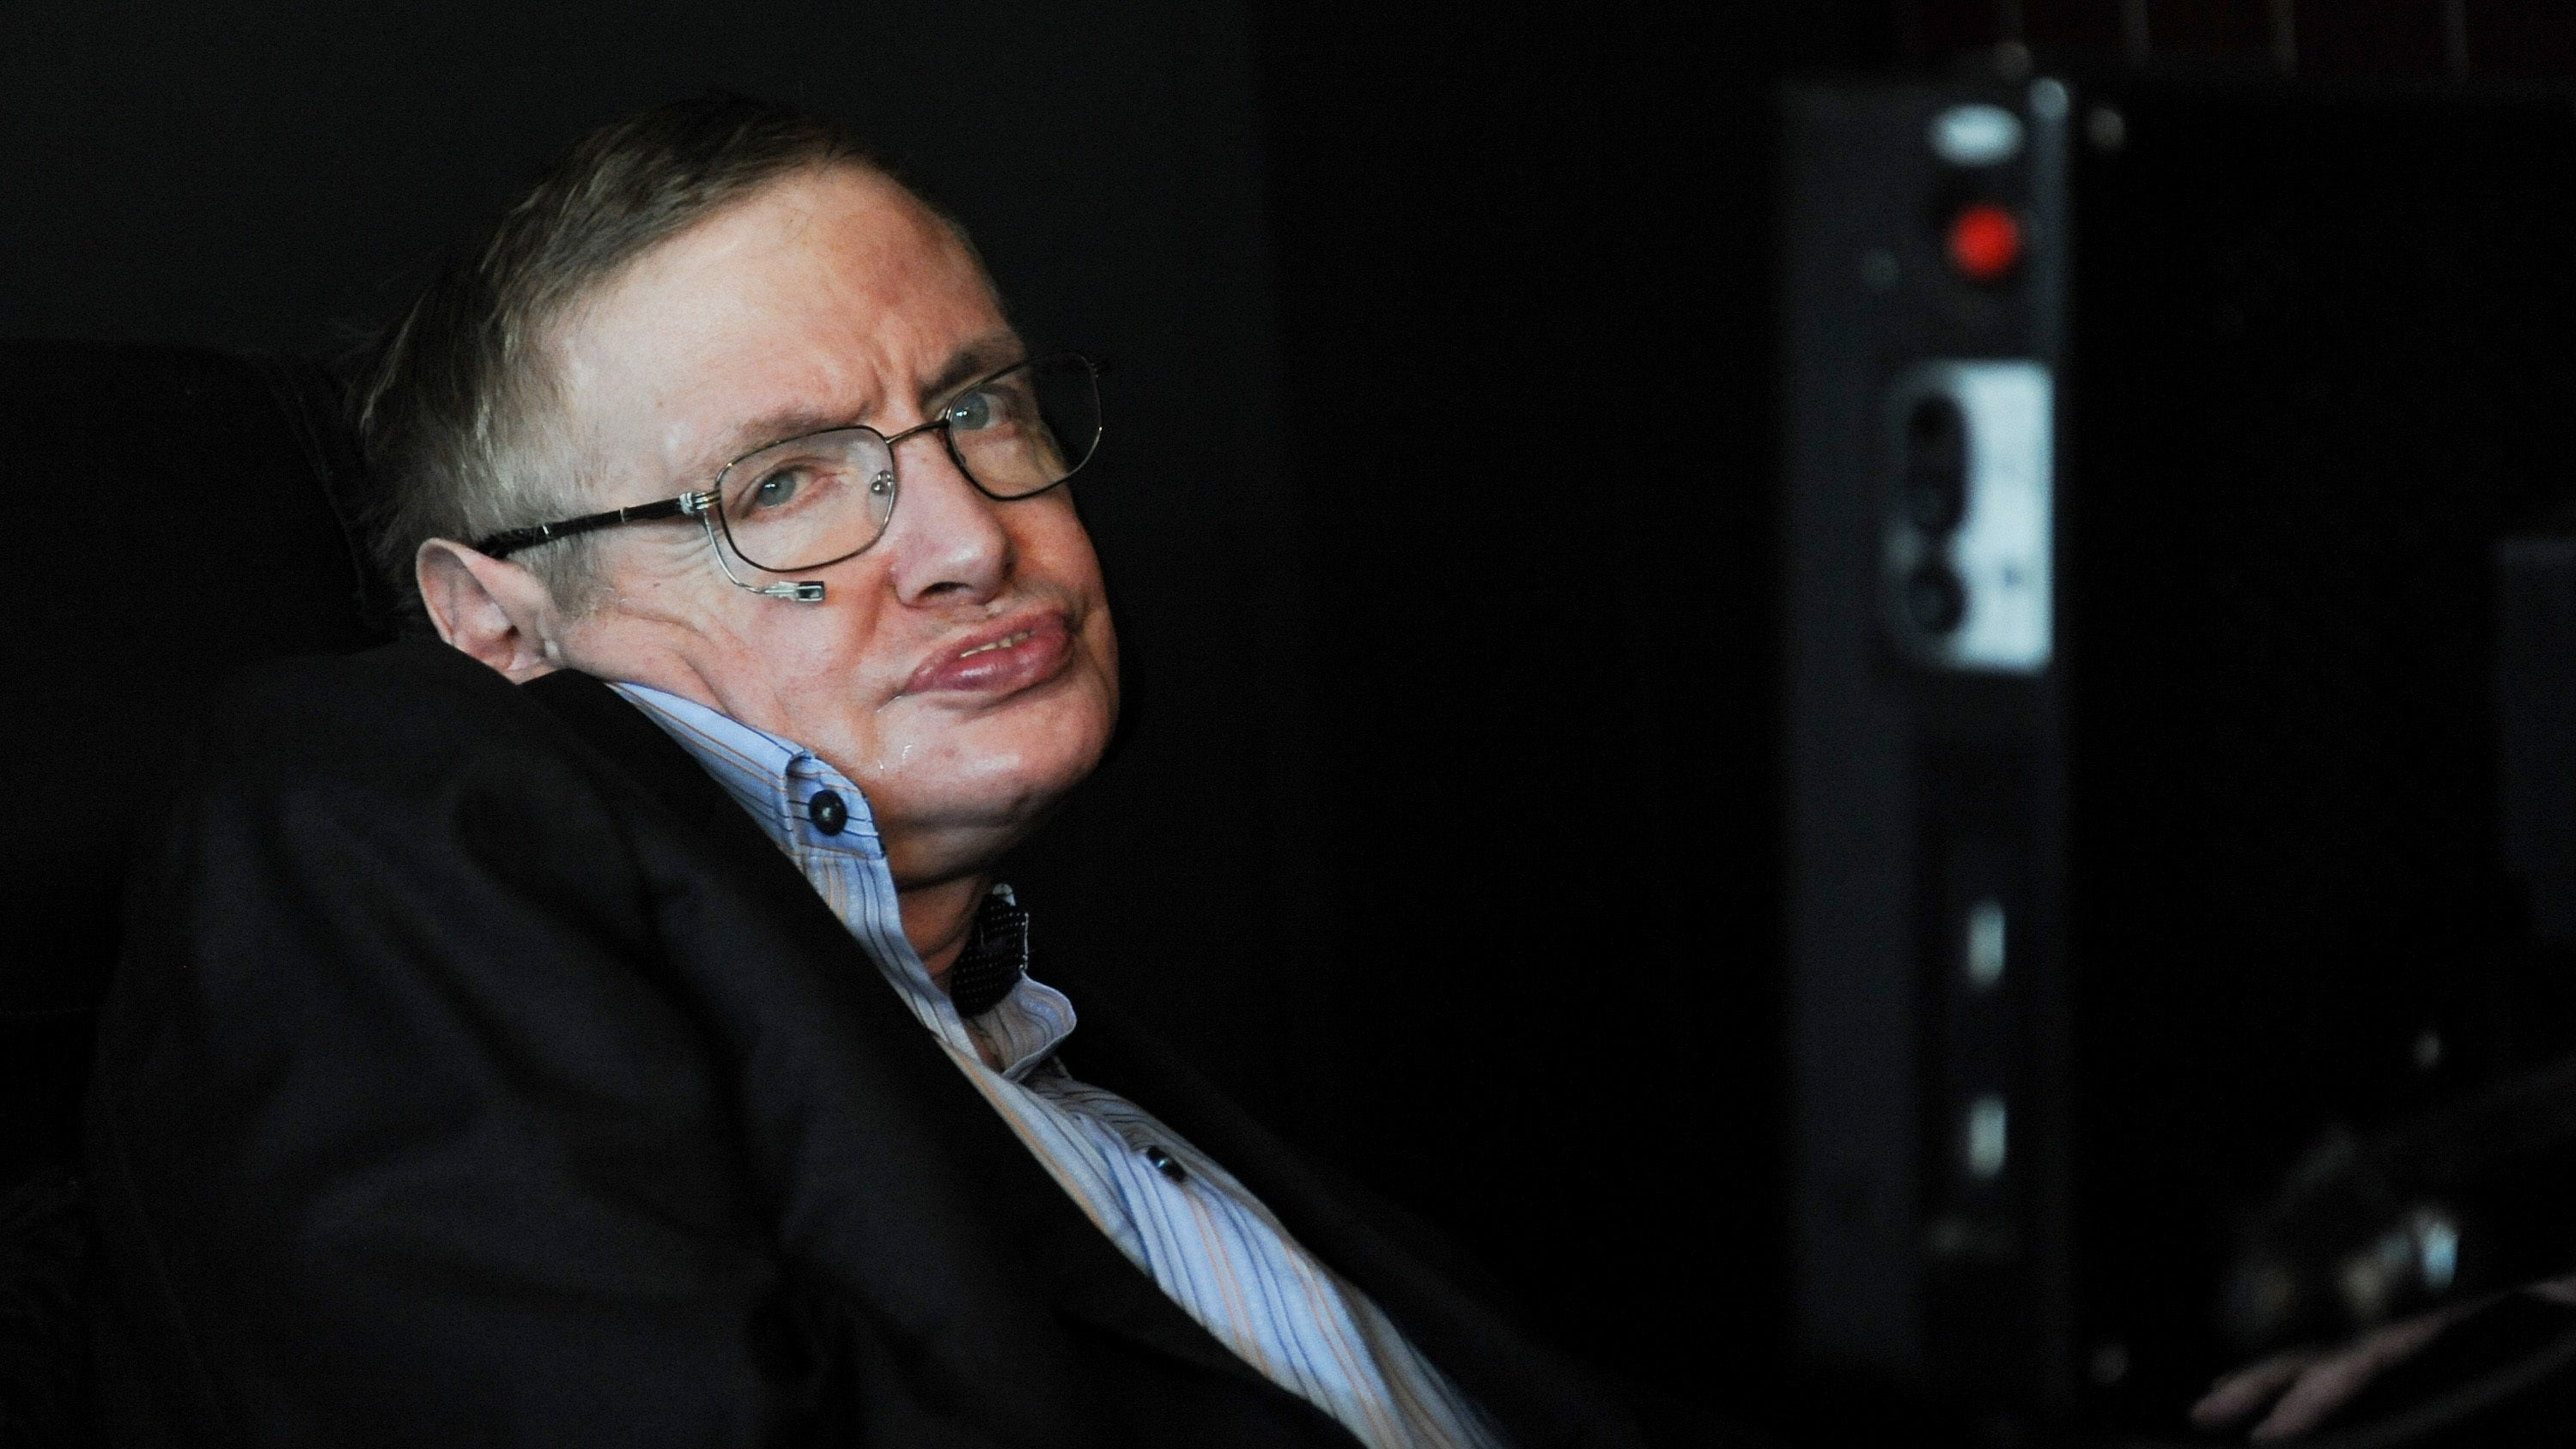 Stephen Hawking Was Right To Worry About Our Impending Doom